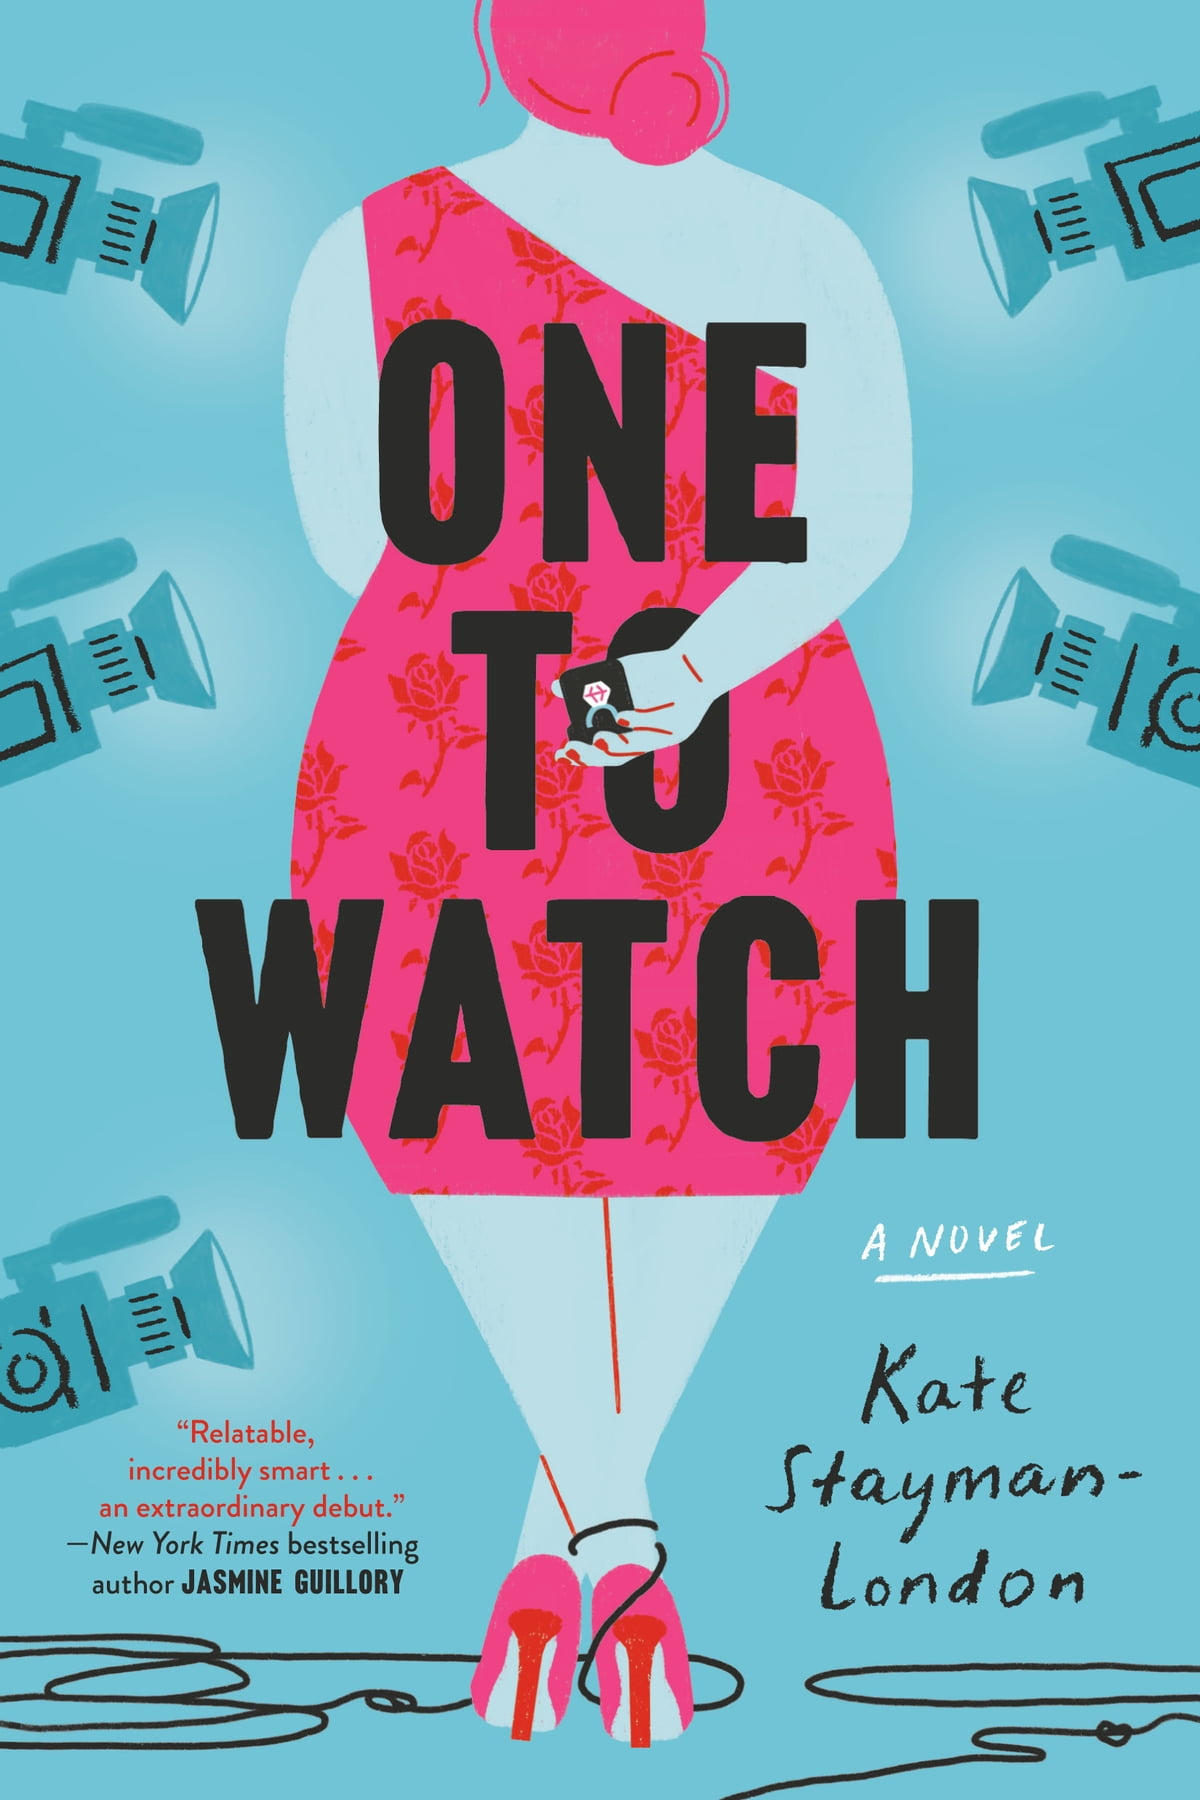 One to Watch eBook by Kate Stayman-London - 9780525510437 | Rakuten Kobo  United States